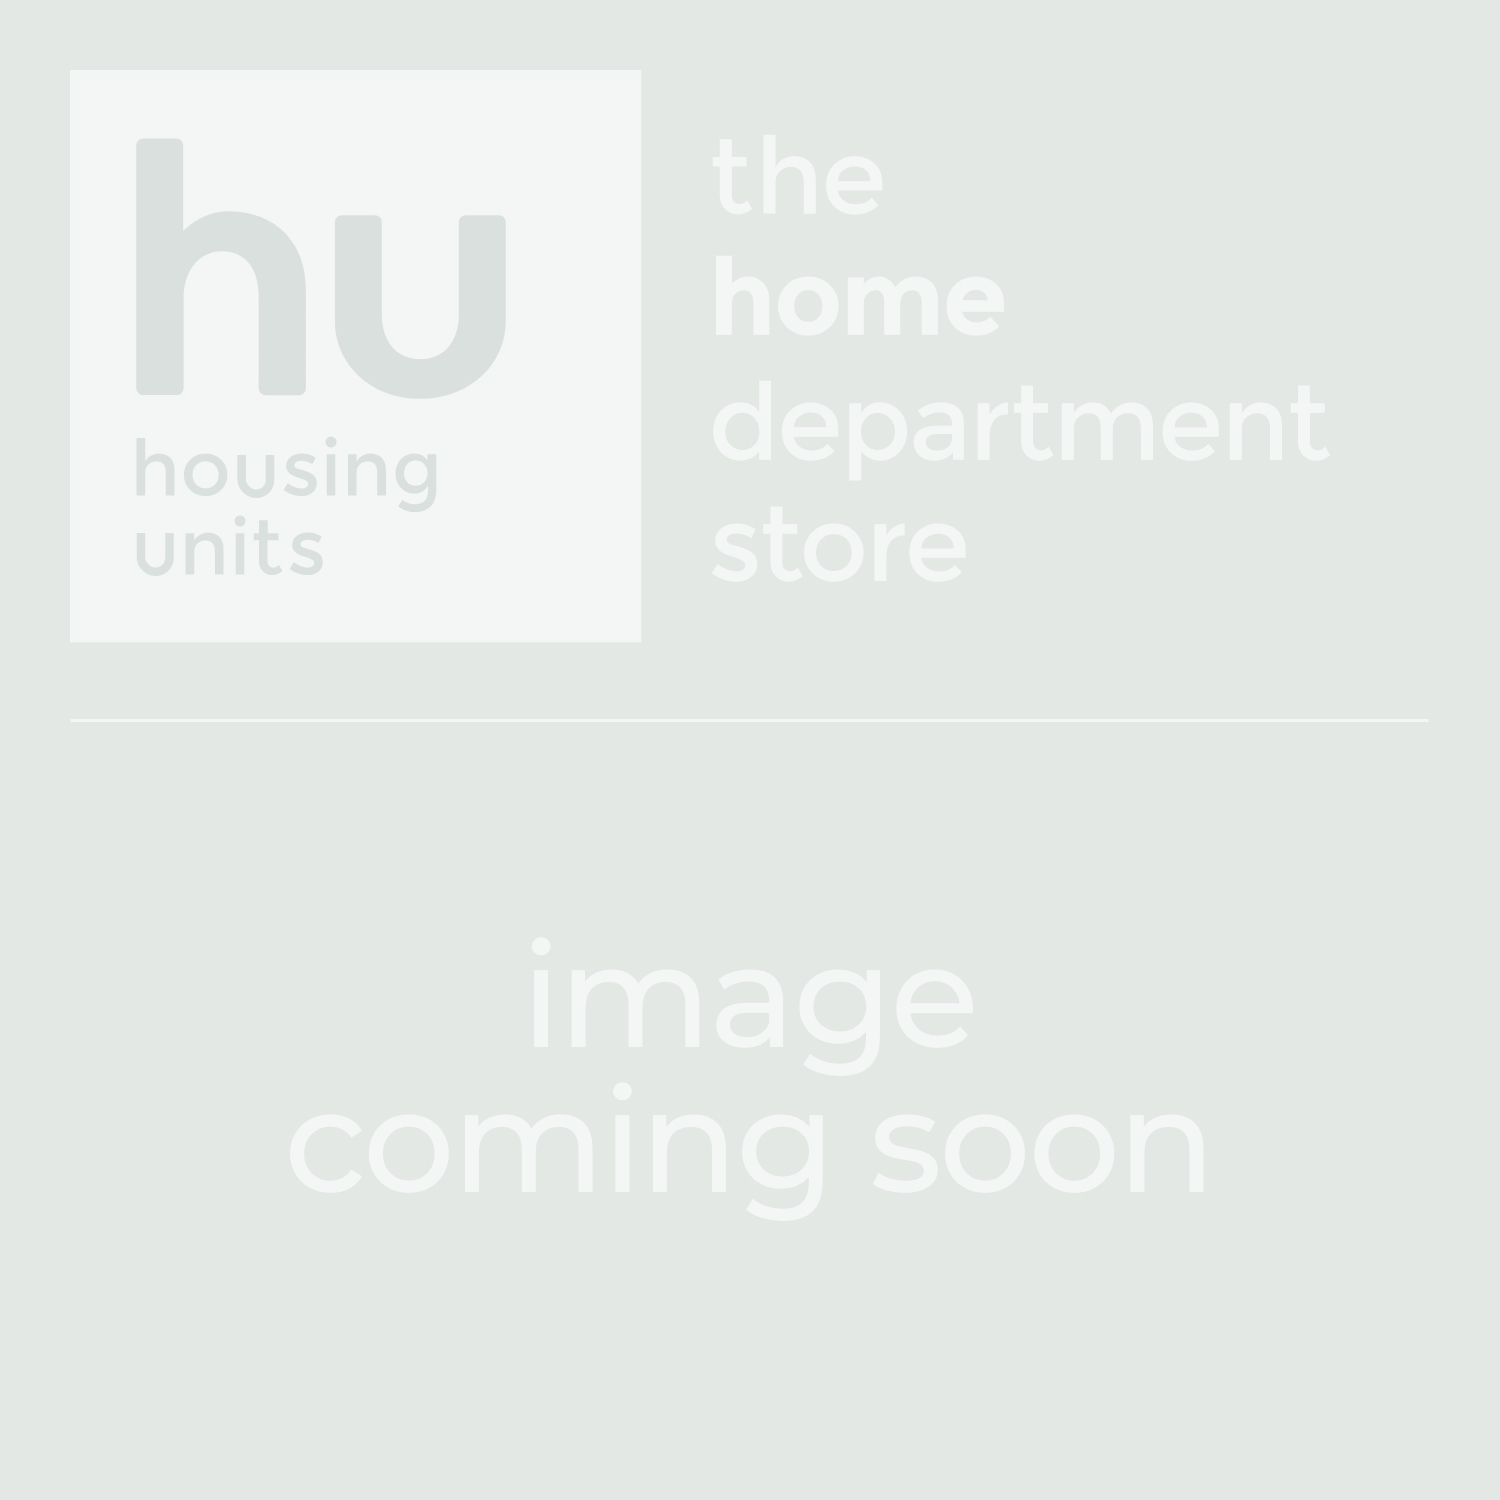 Prescott Mink Teddy Bear Fabric Large Sofa - Lifestyle Displayed With Scatter Cushions   Housing Units